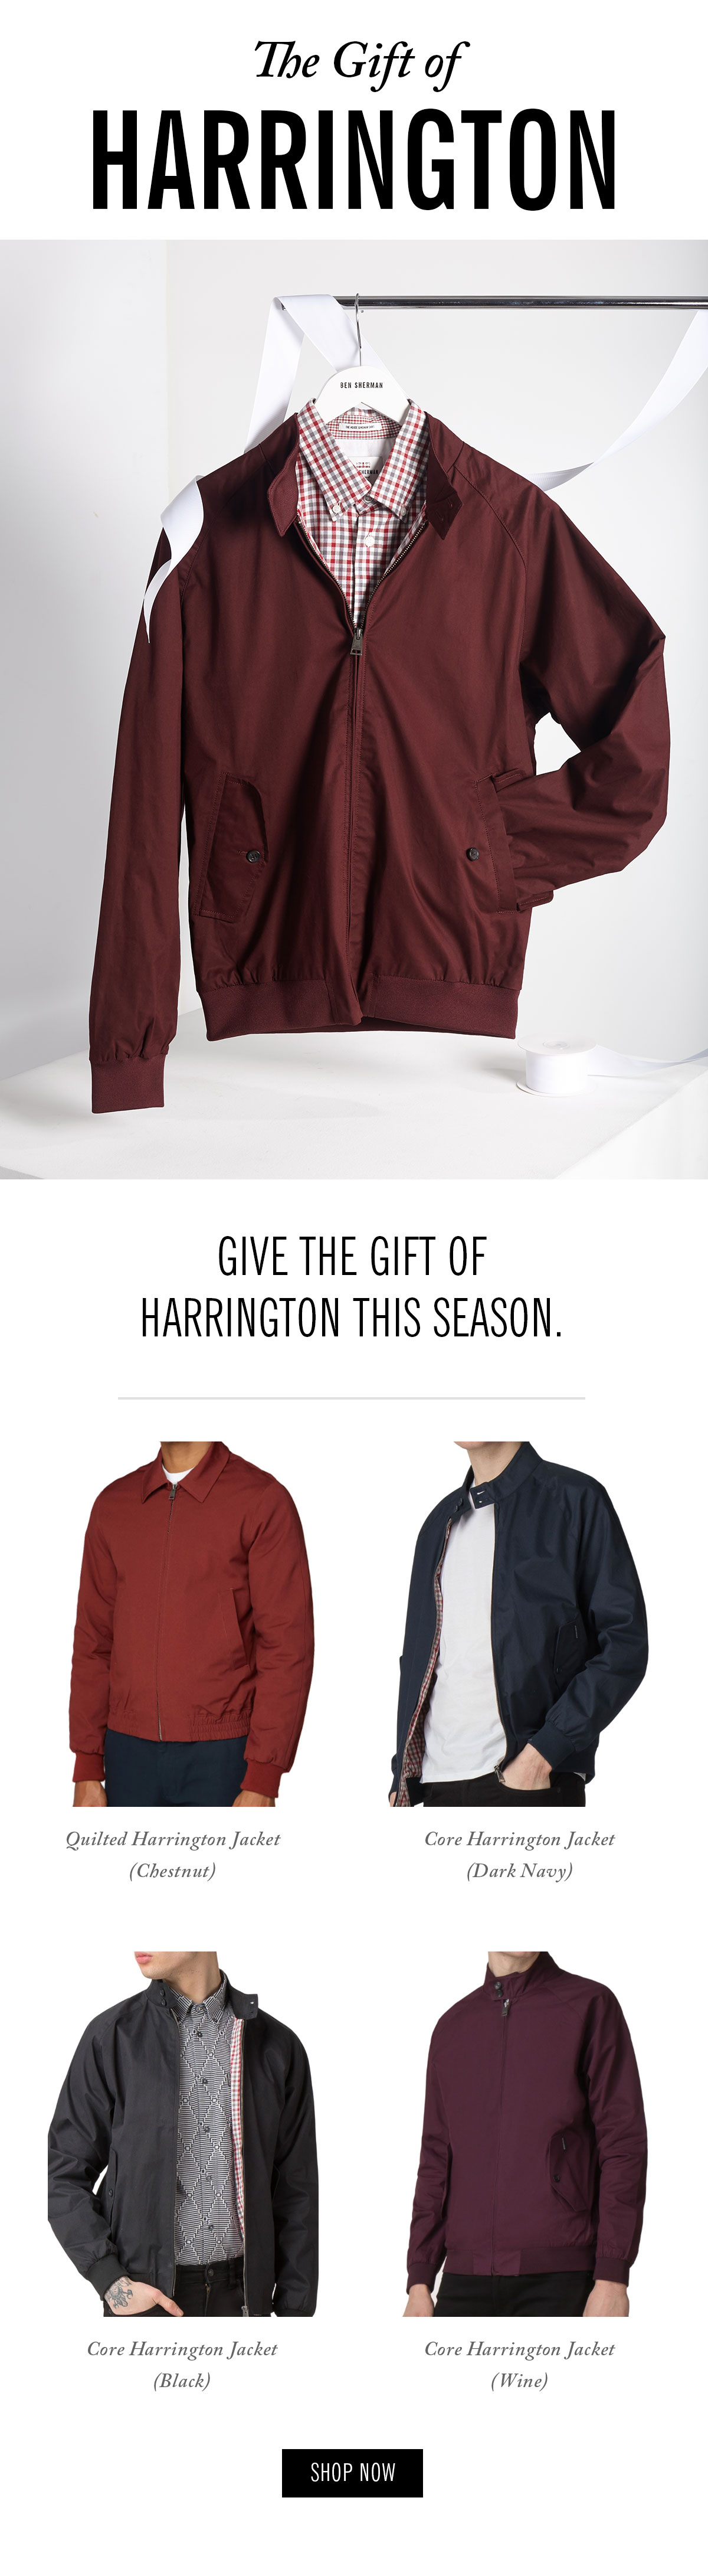 Give the gift of Harrington jackets this season. | Shop Now